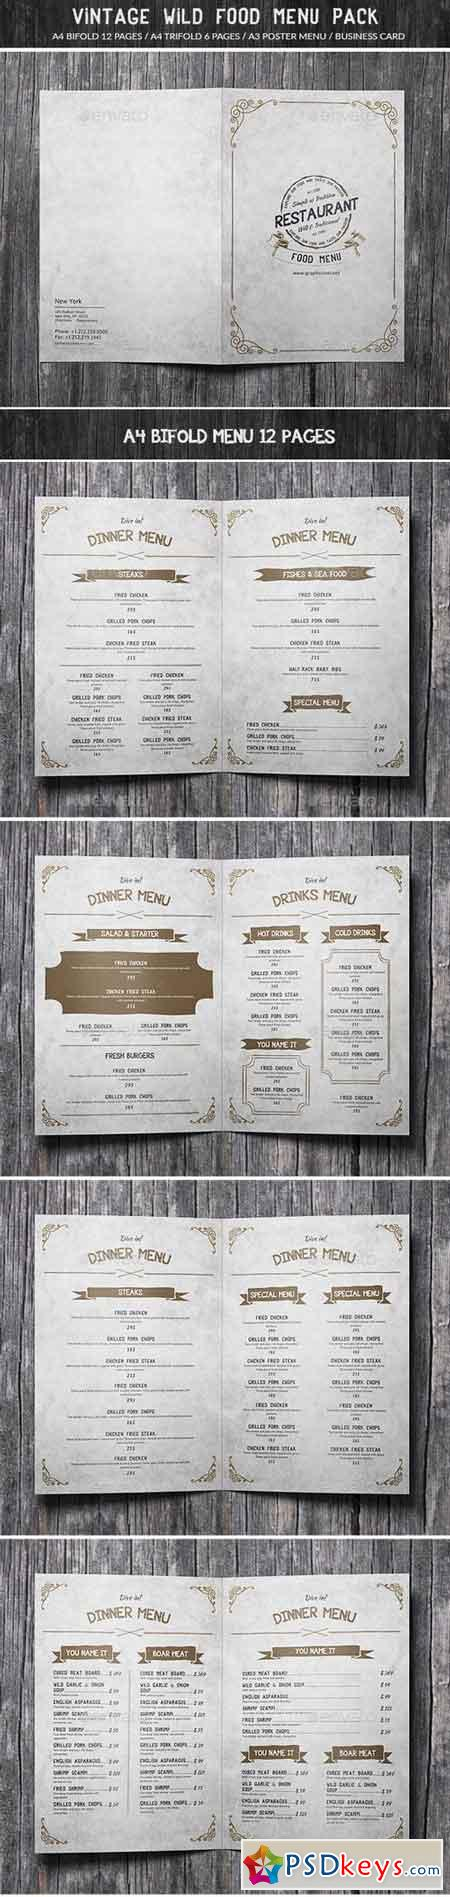 Vintage Wild Food Menu Pack 15661661